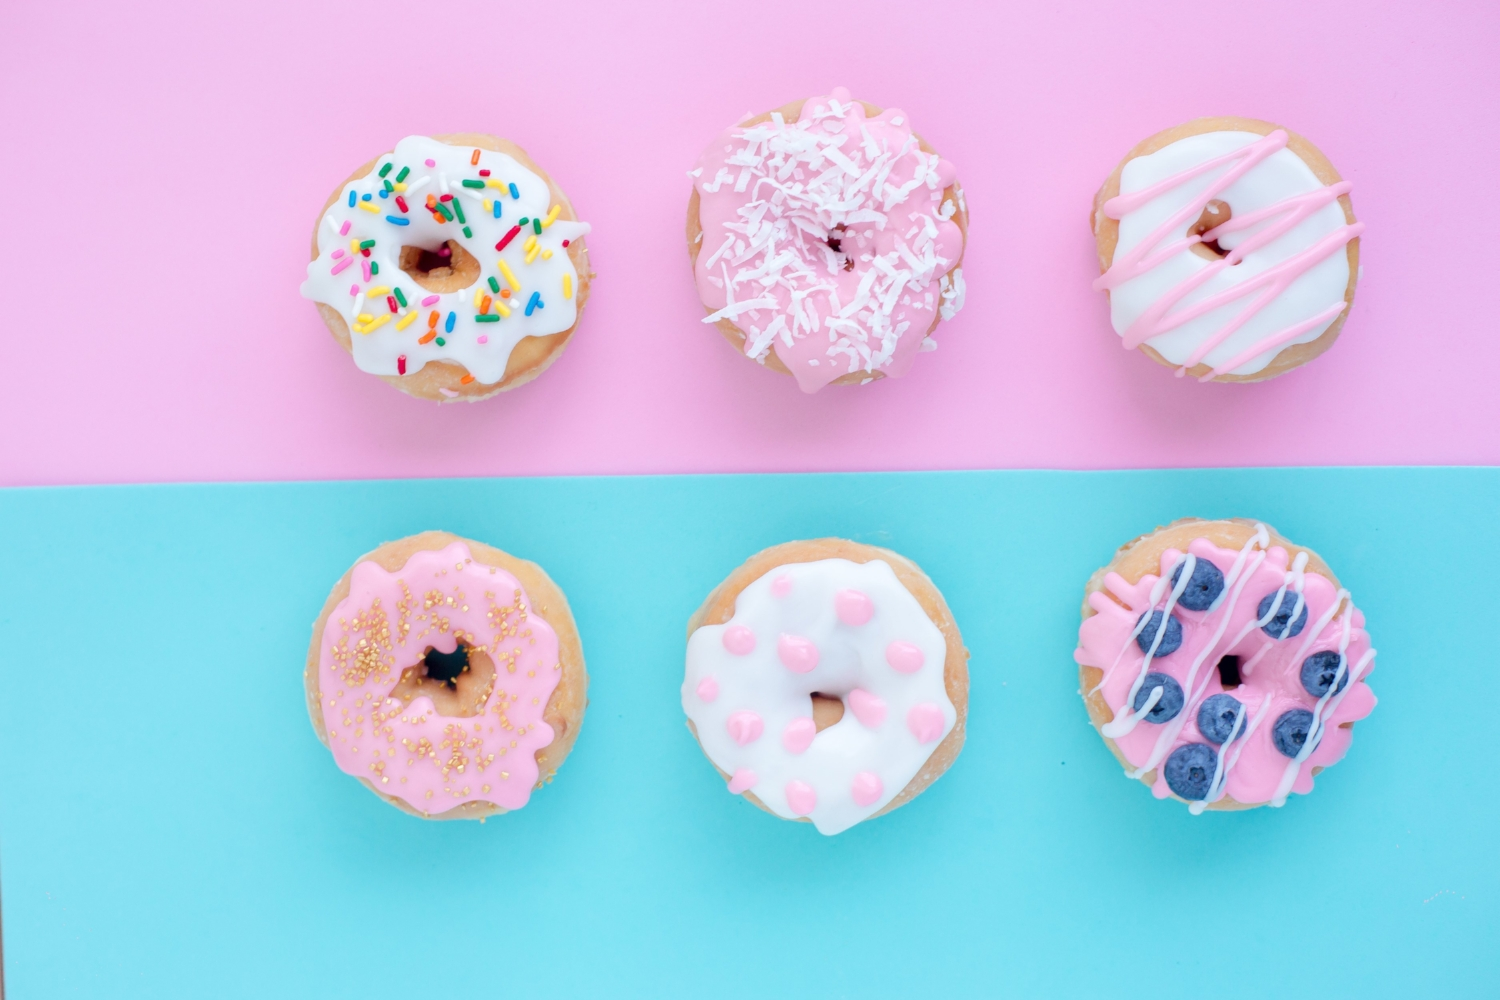 Ditch The Donuts - Easy steps you can apply today to start balancing your blood sugar levels and kick the sabotaging sugar habit once and for all